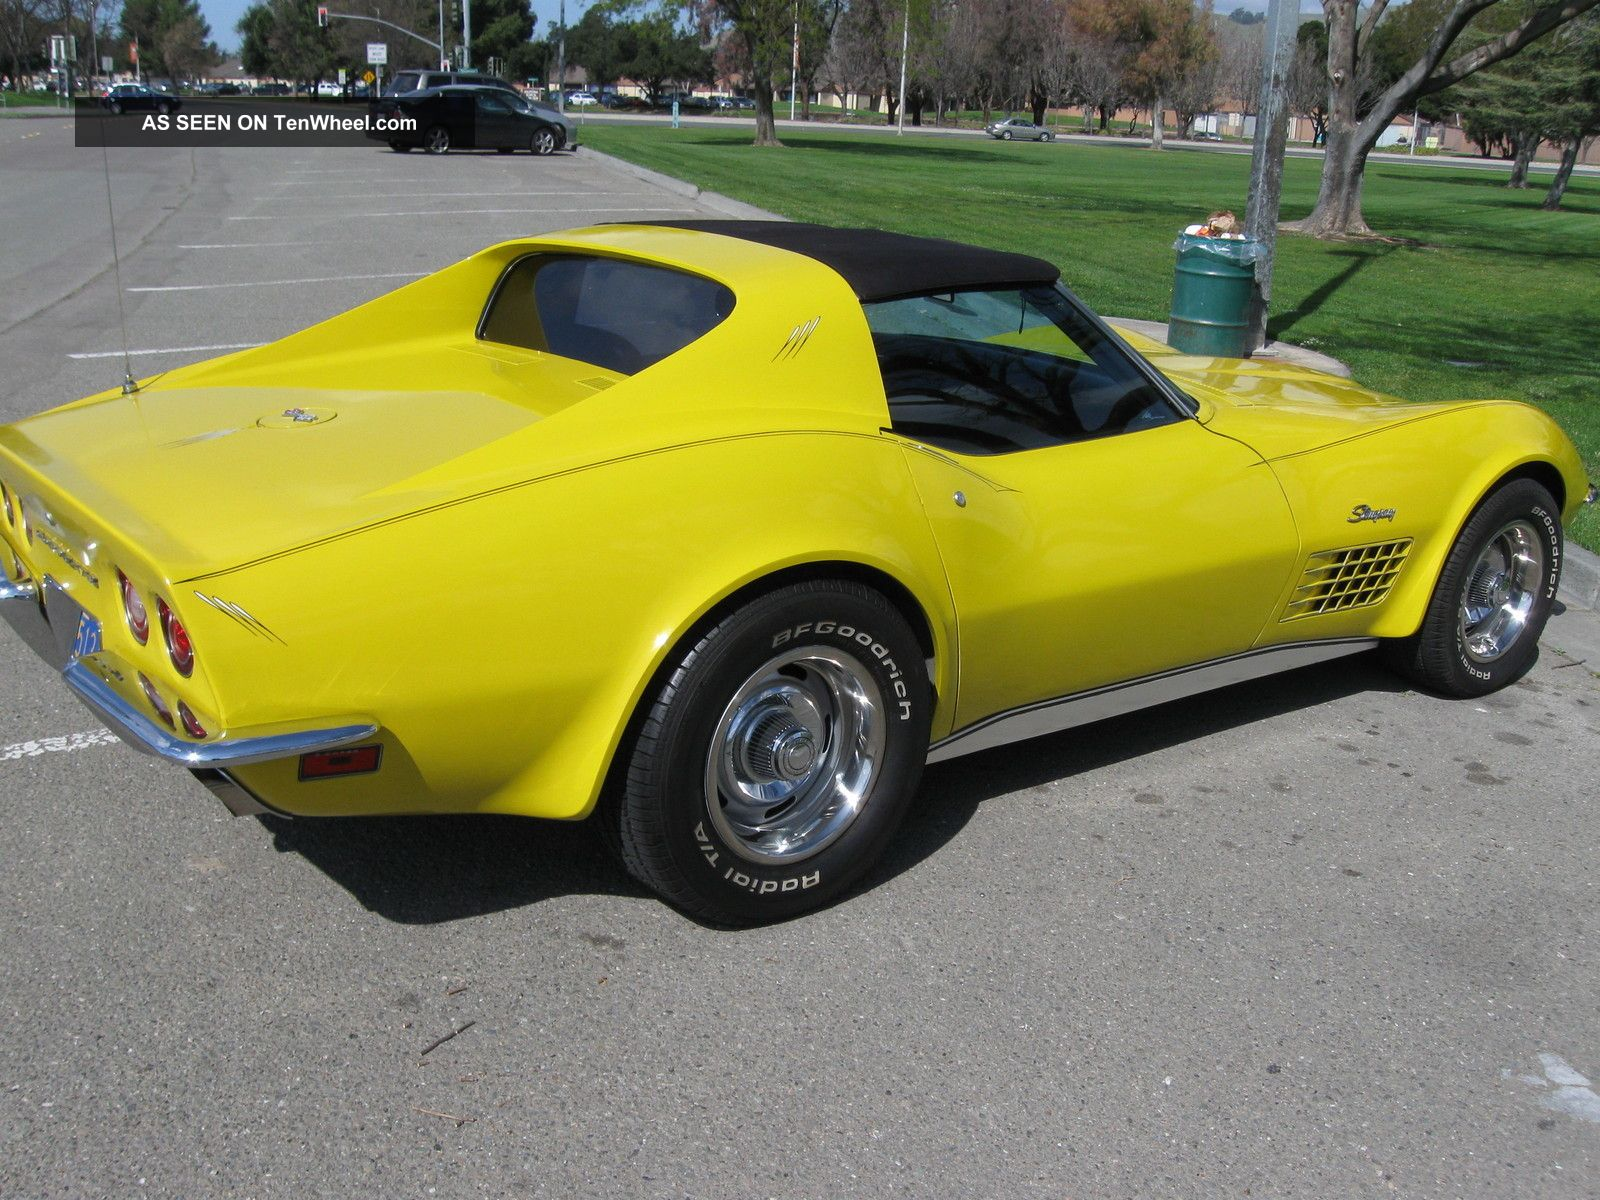 1972 72 4 Speed T - Top Corvette,  Sunflower Yellow, Corvette photo